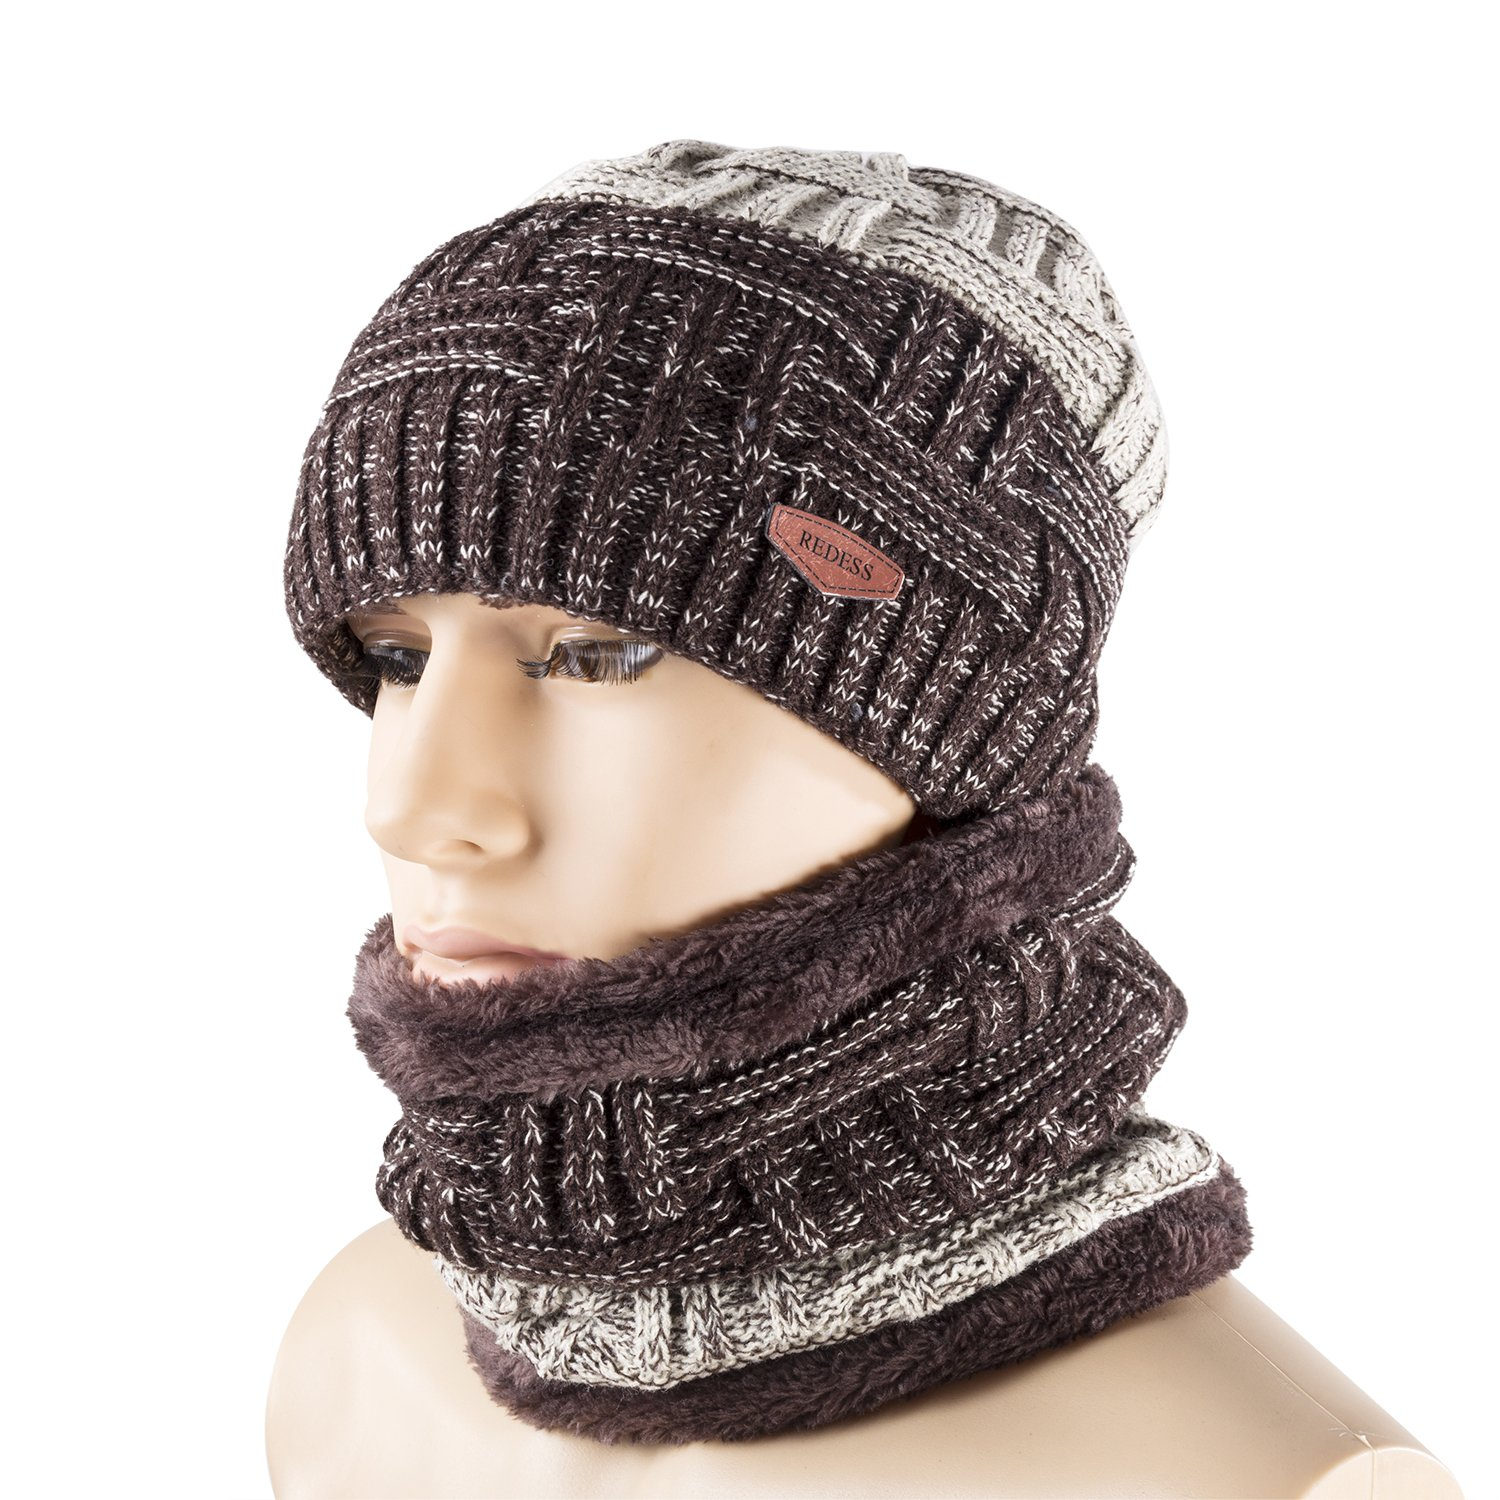 REDESS Winter Warm Beanie Knitting Hat Scarf Neck Warmer Men and ... 9bee3ea5a7ed